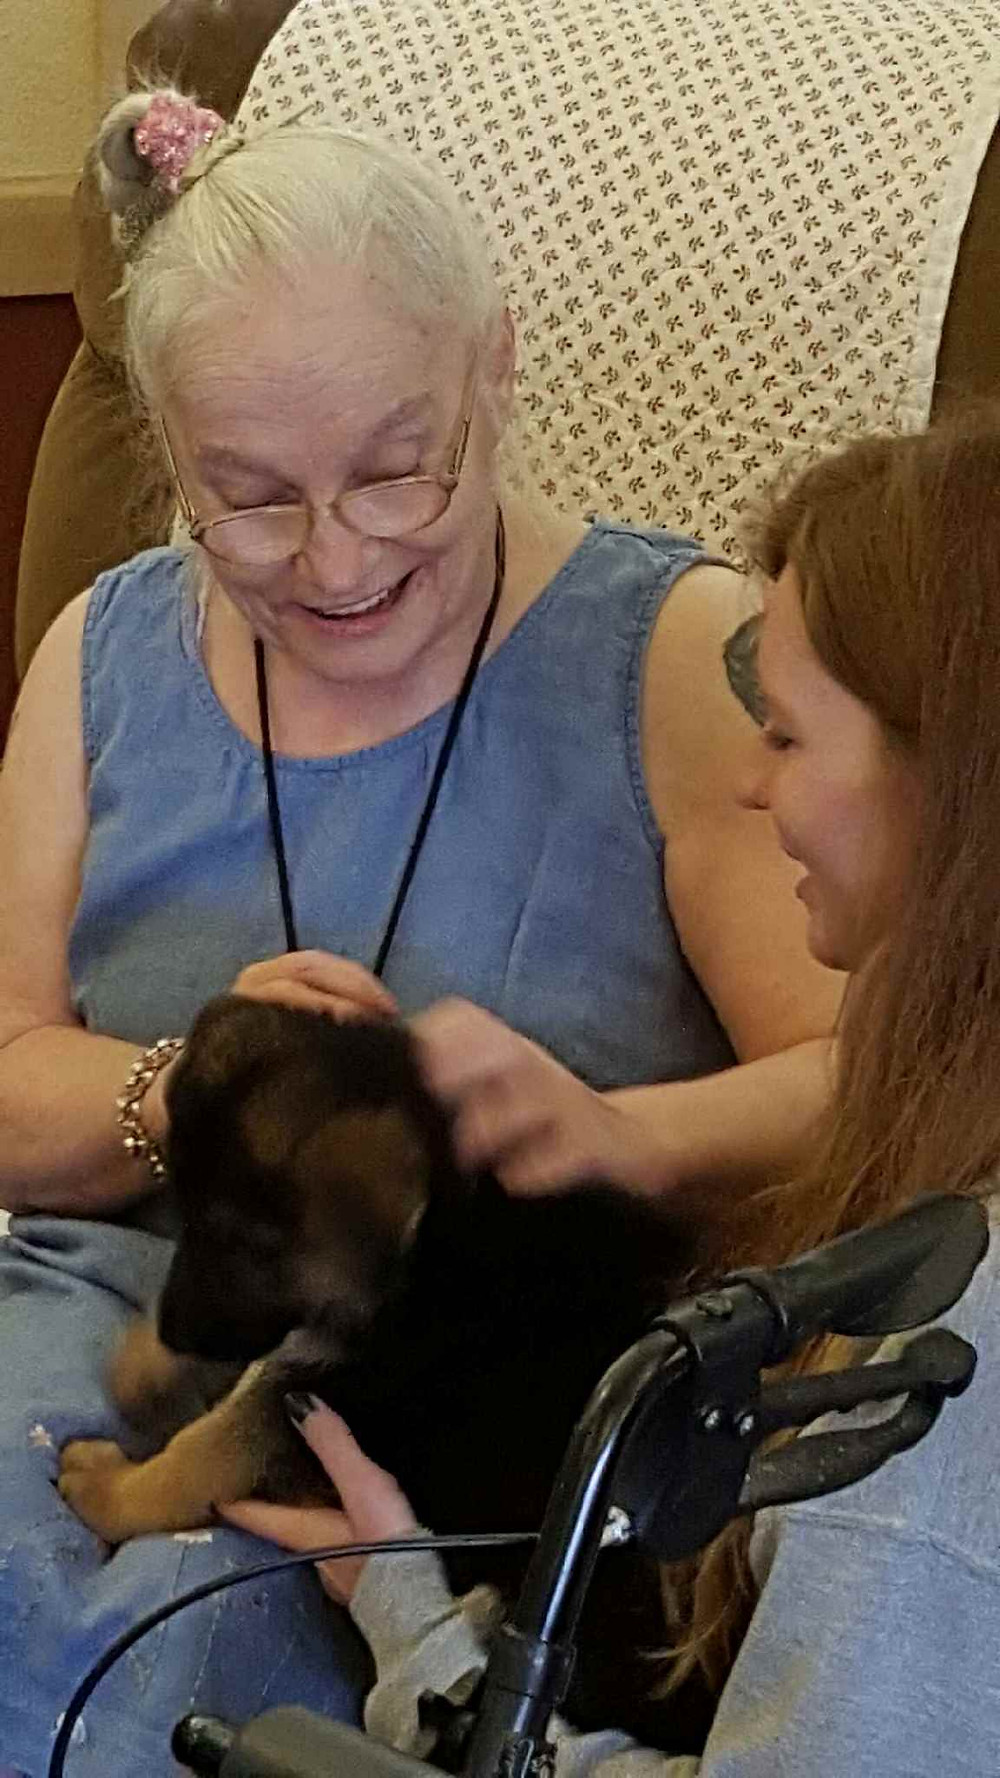 We take Flood Farm puppies to the senior center as part of their socialization training.